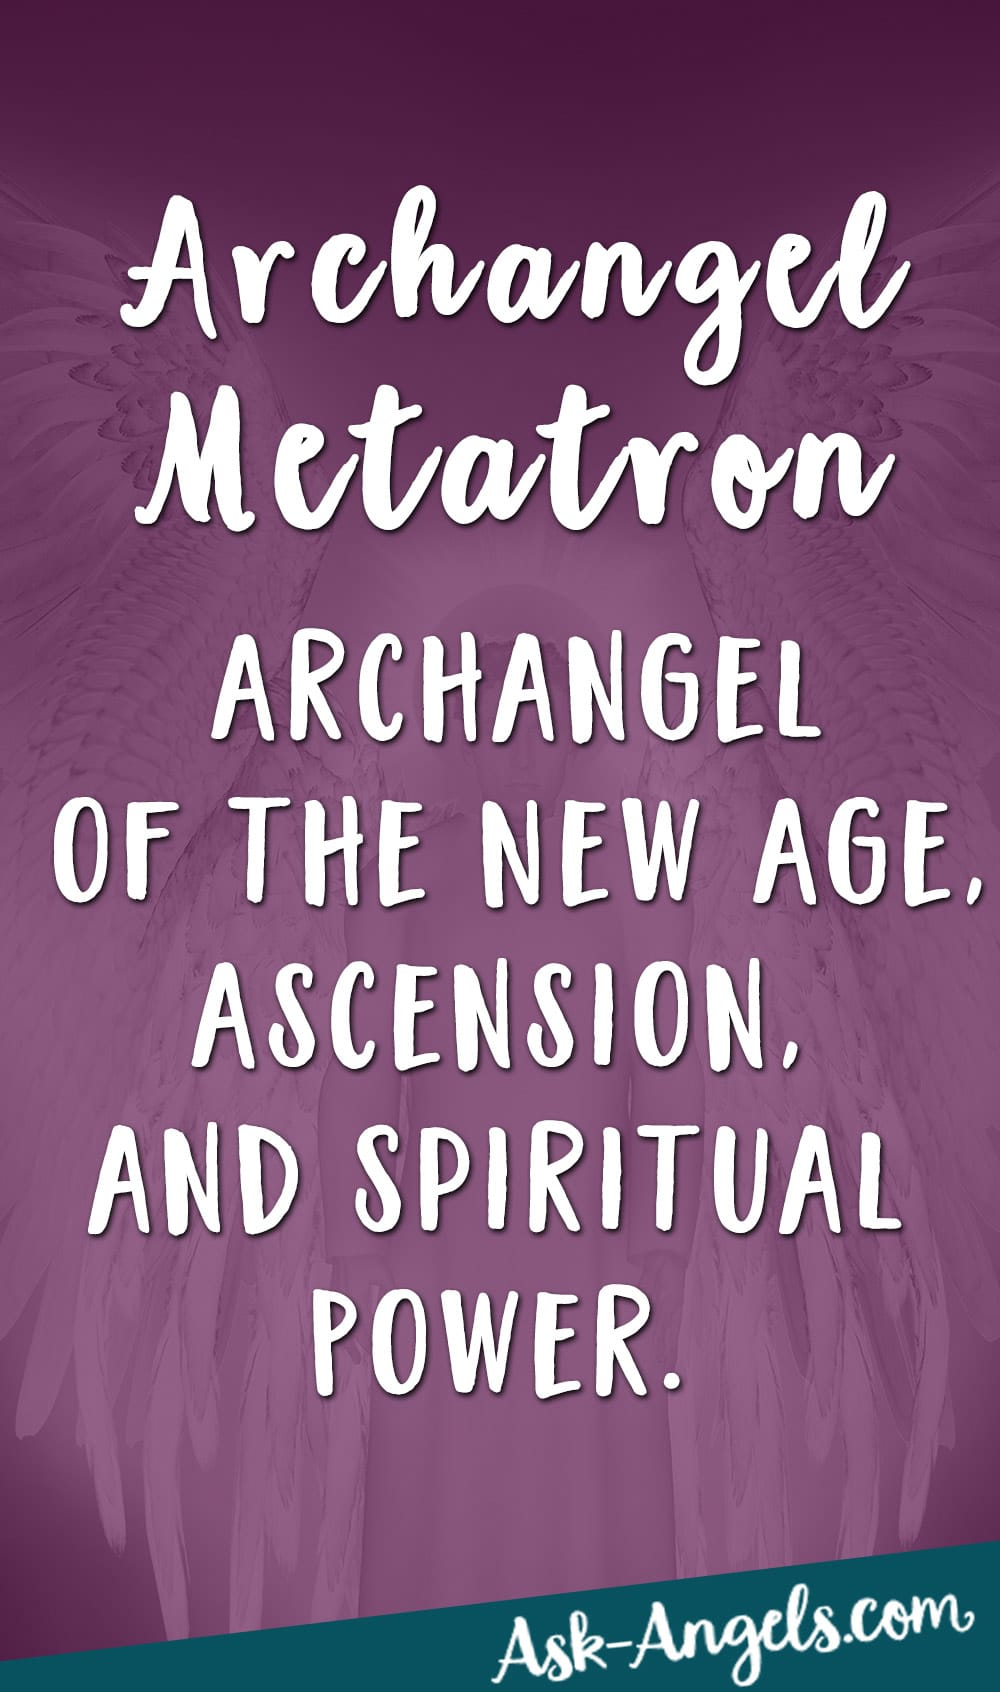 Archangel Metatron- Archangel of the New Age